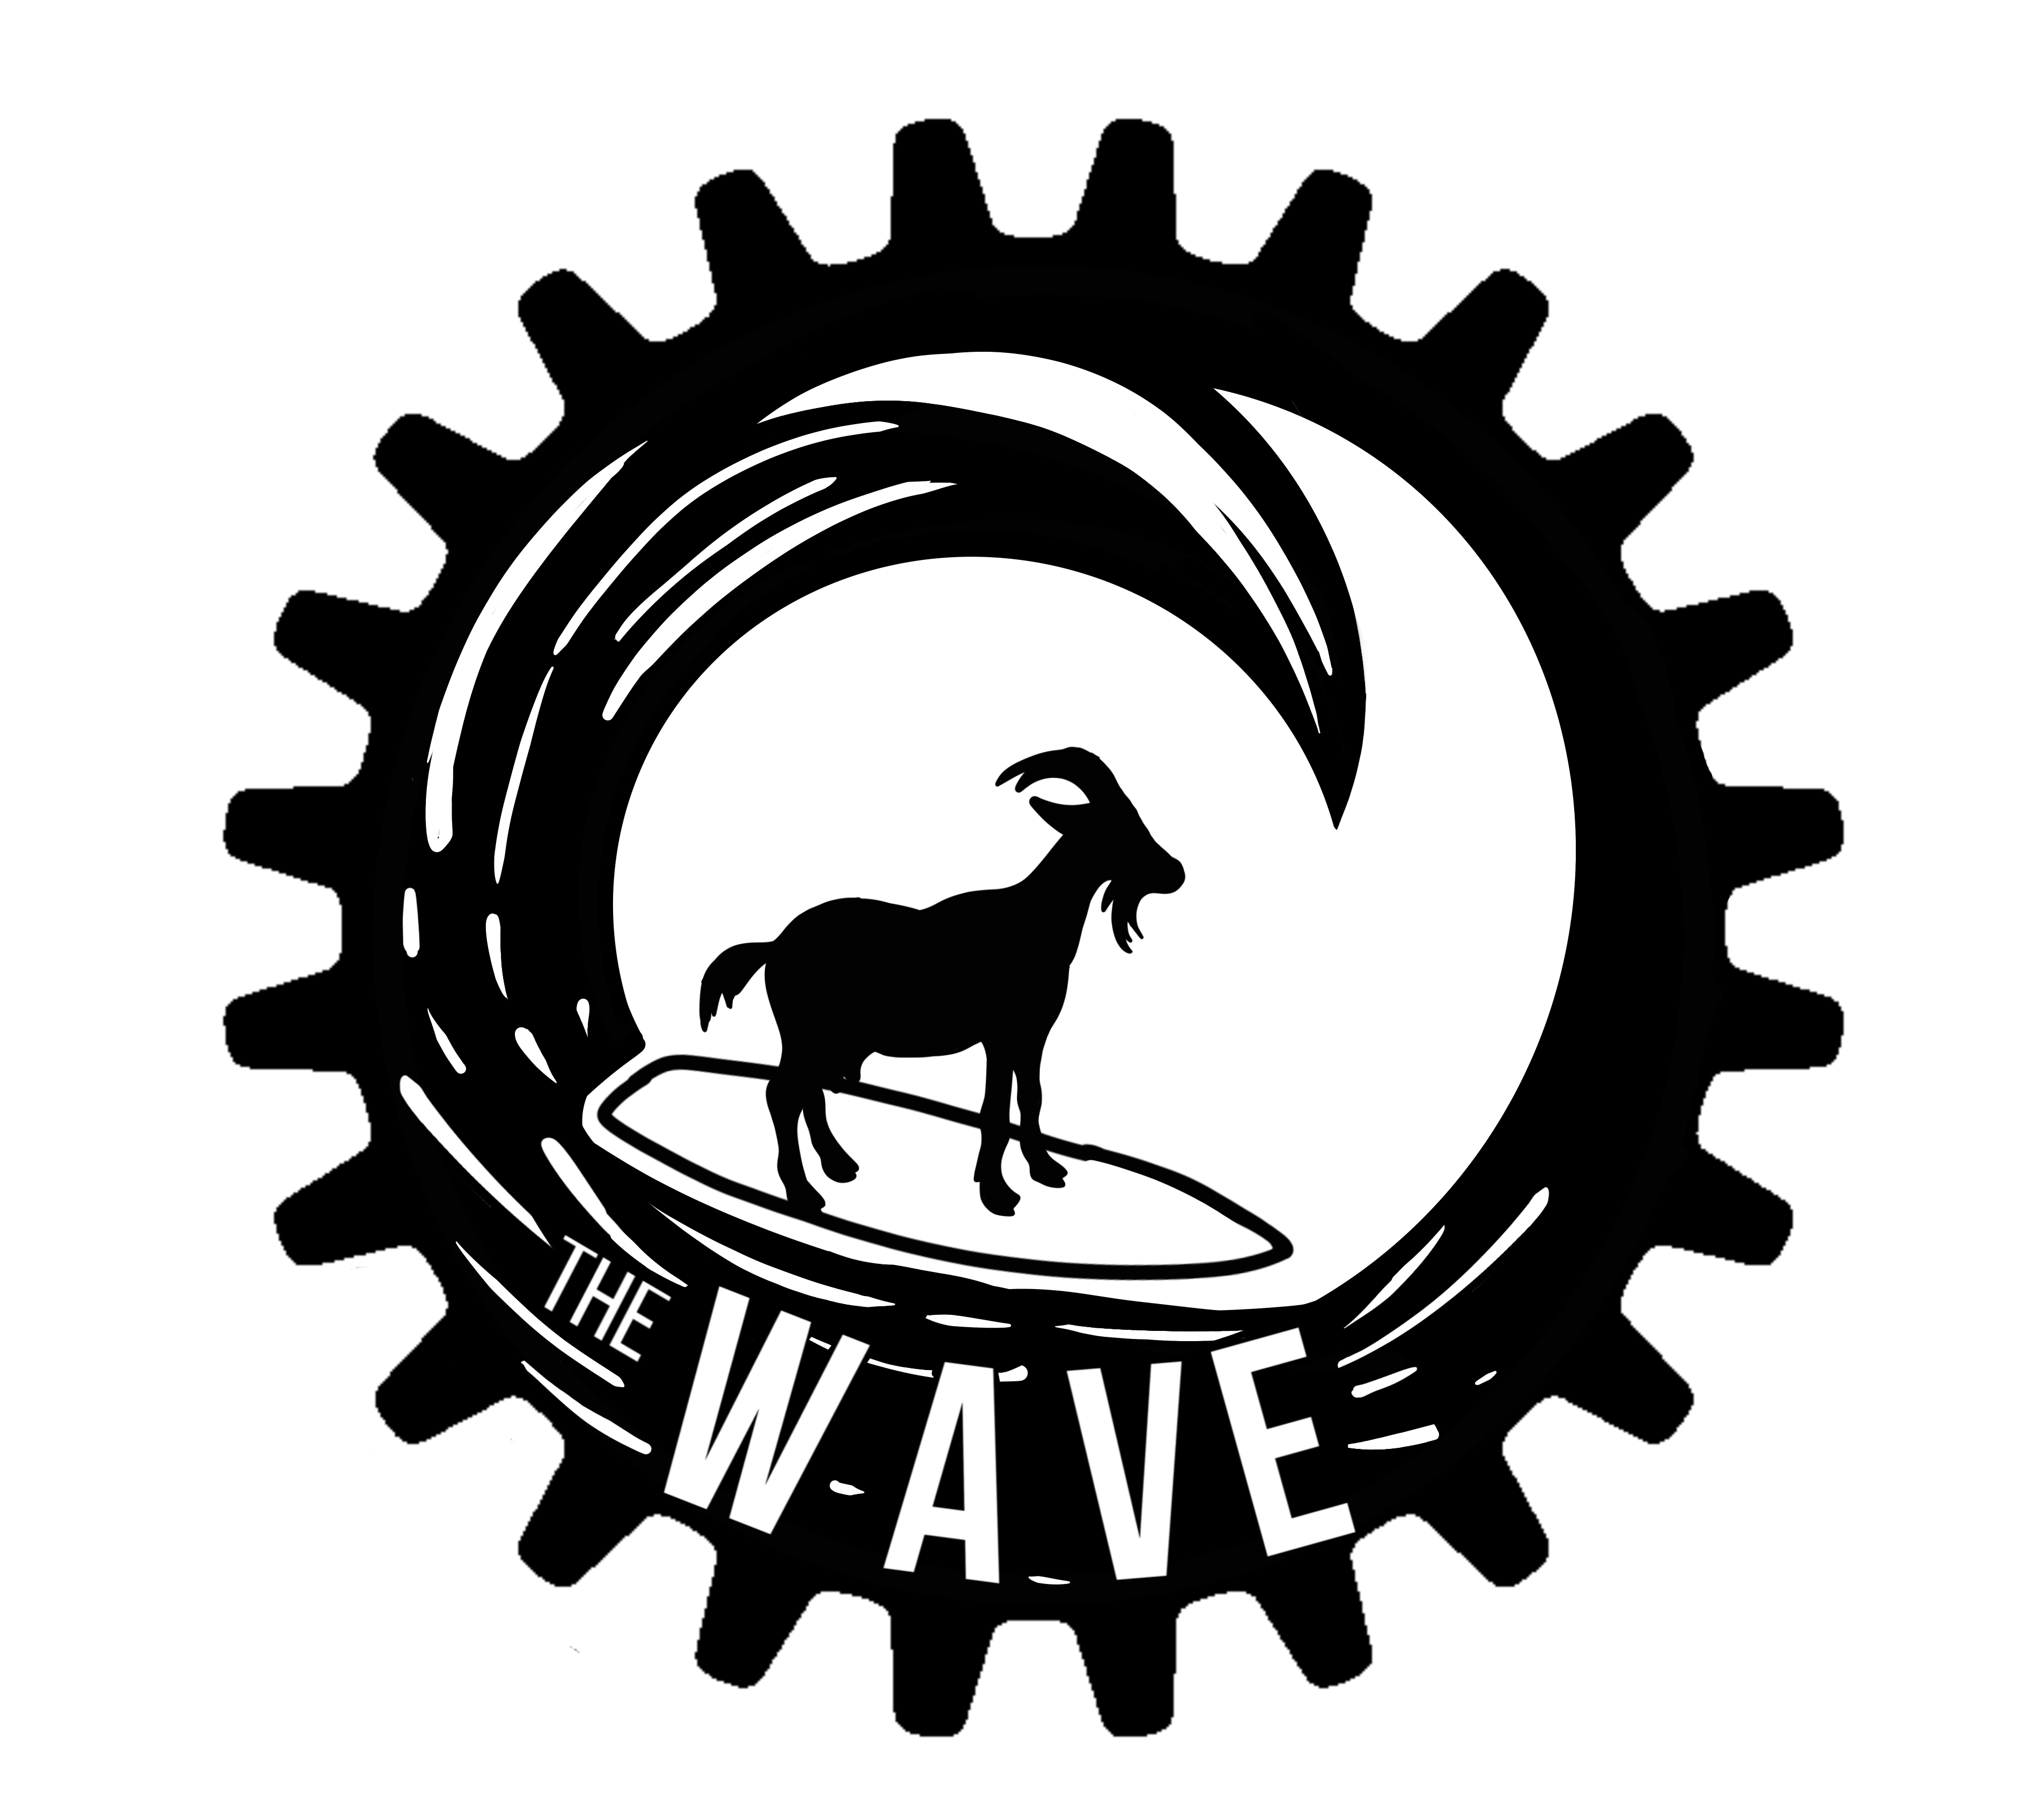 Signature Event: The WAVE at WPI